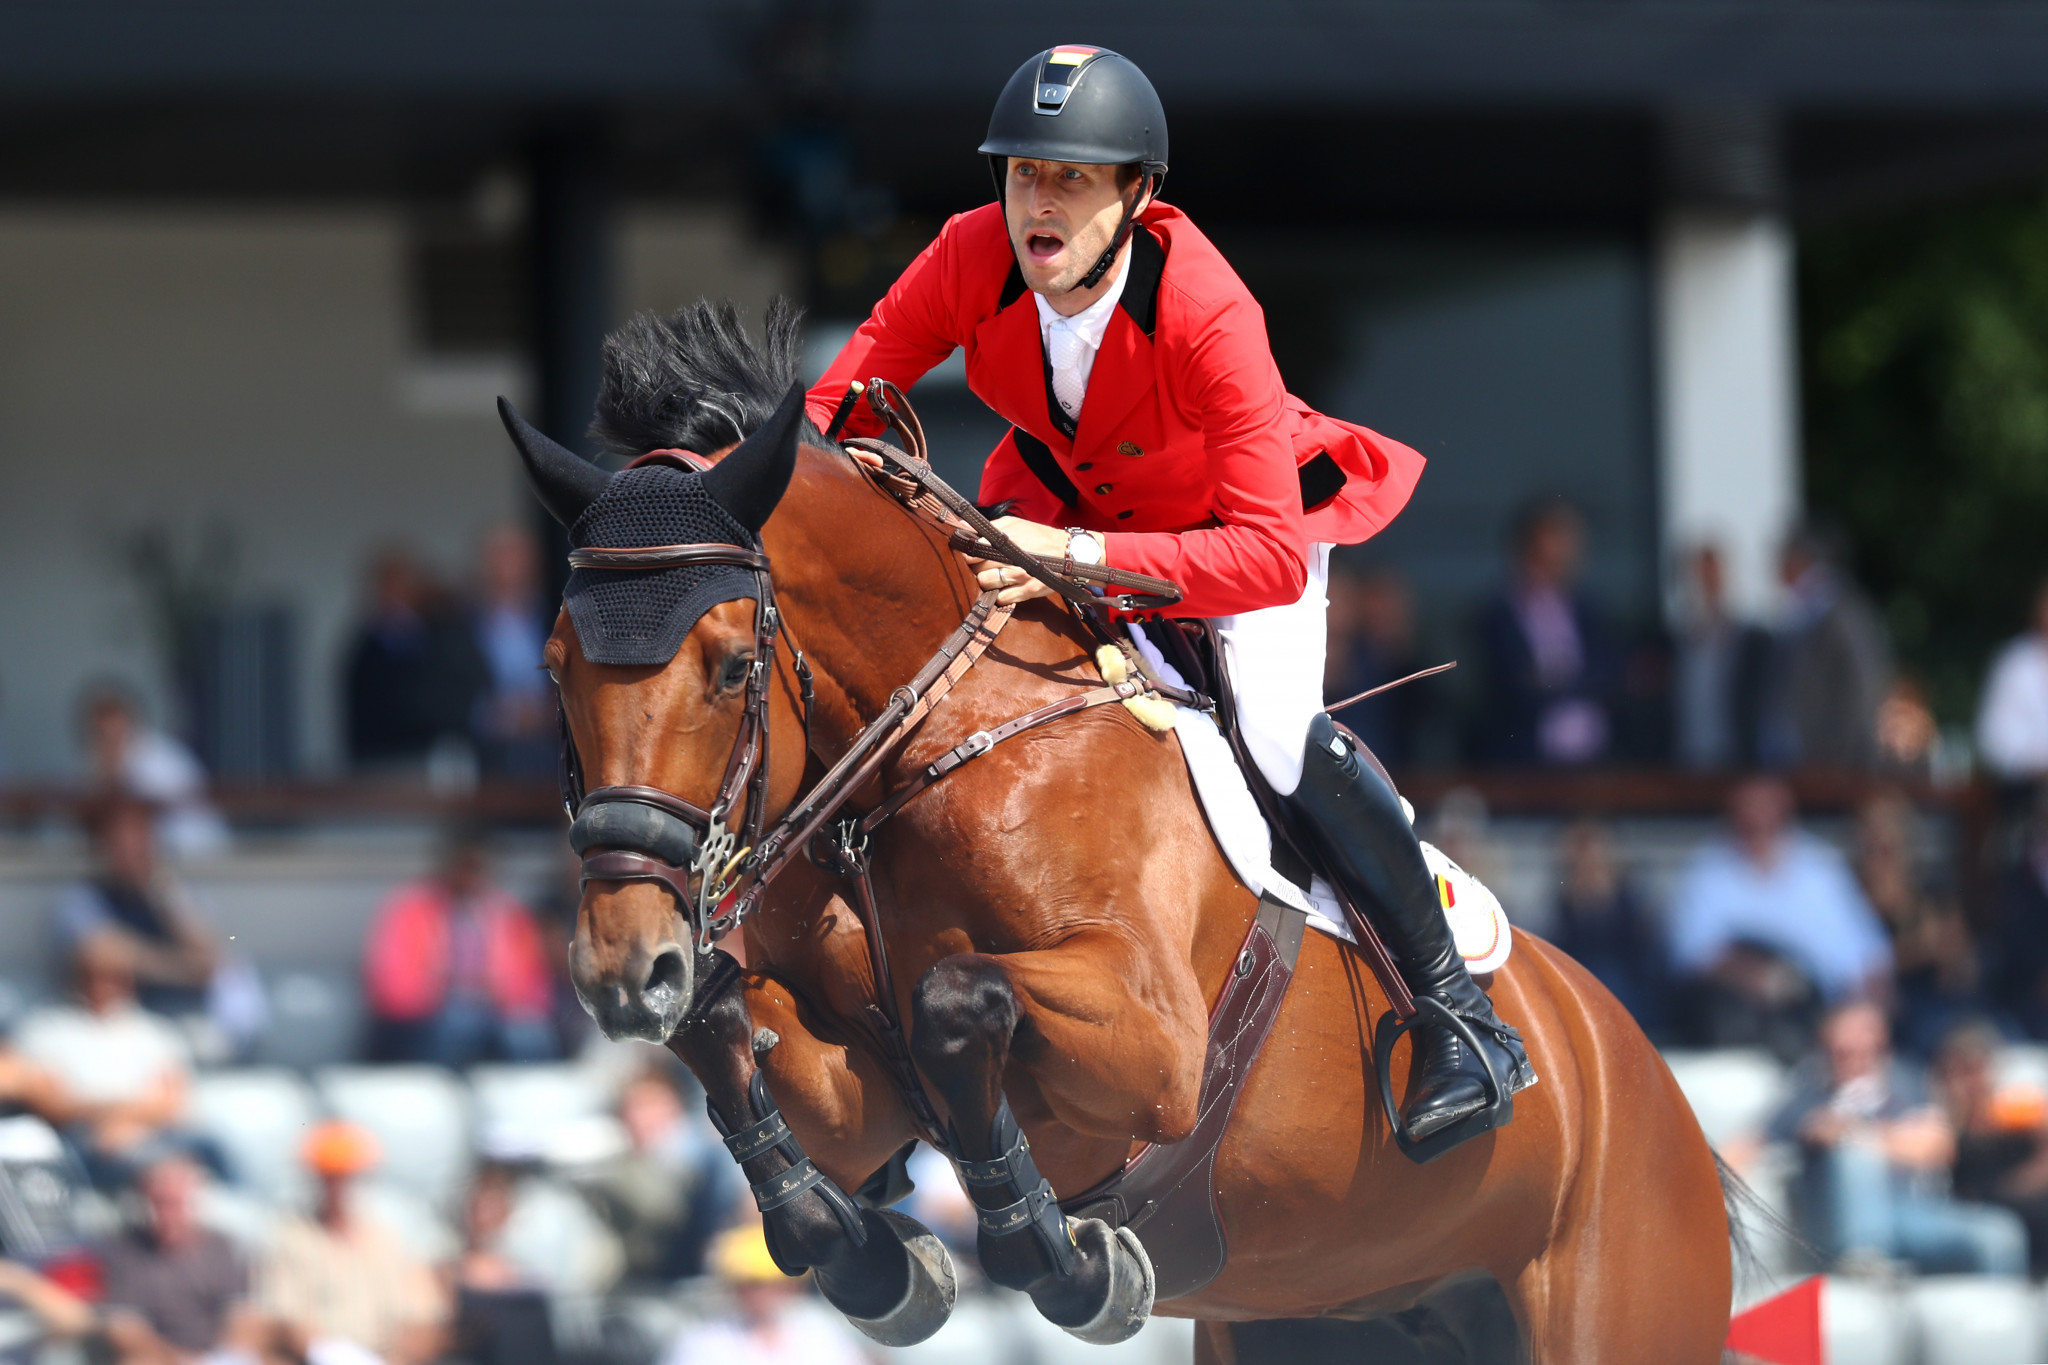 Pieter Devos of Belgium rides Claire Z to a clear round ©Getty Images